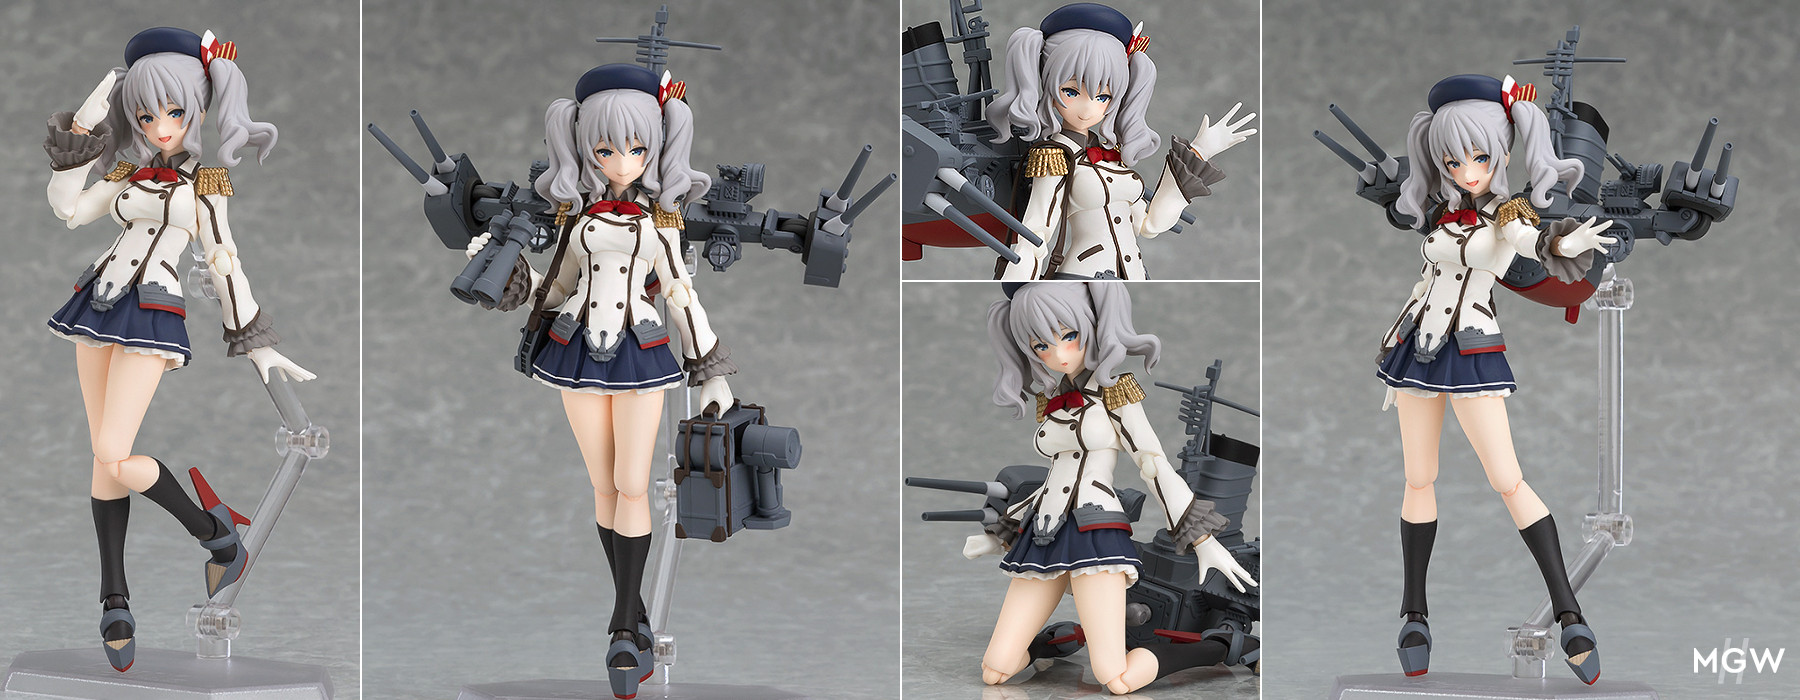 Max Factory figma Kashima from Kantai Collection KanColle